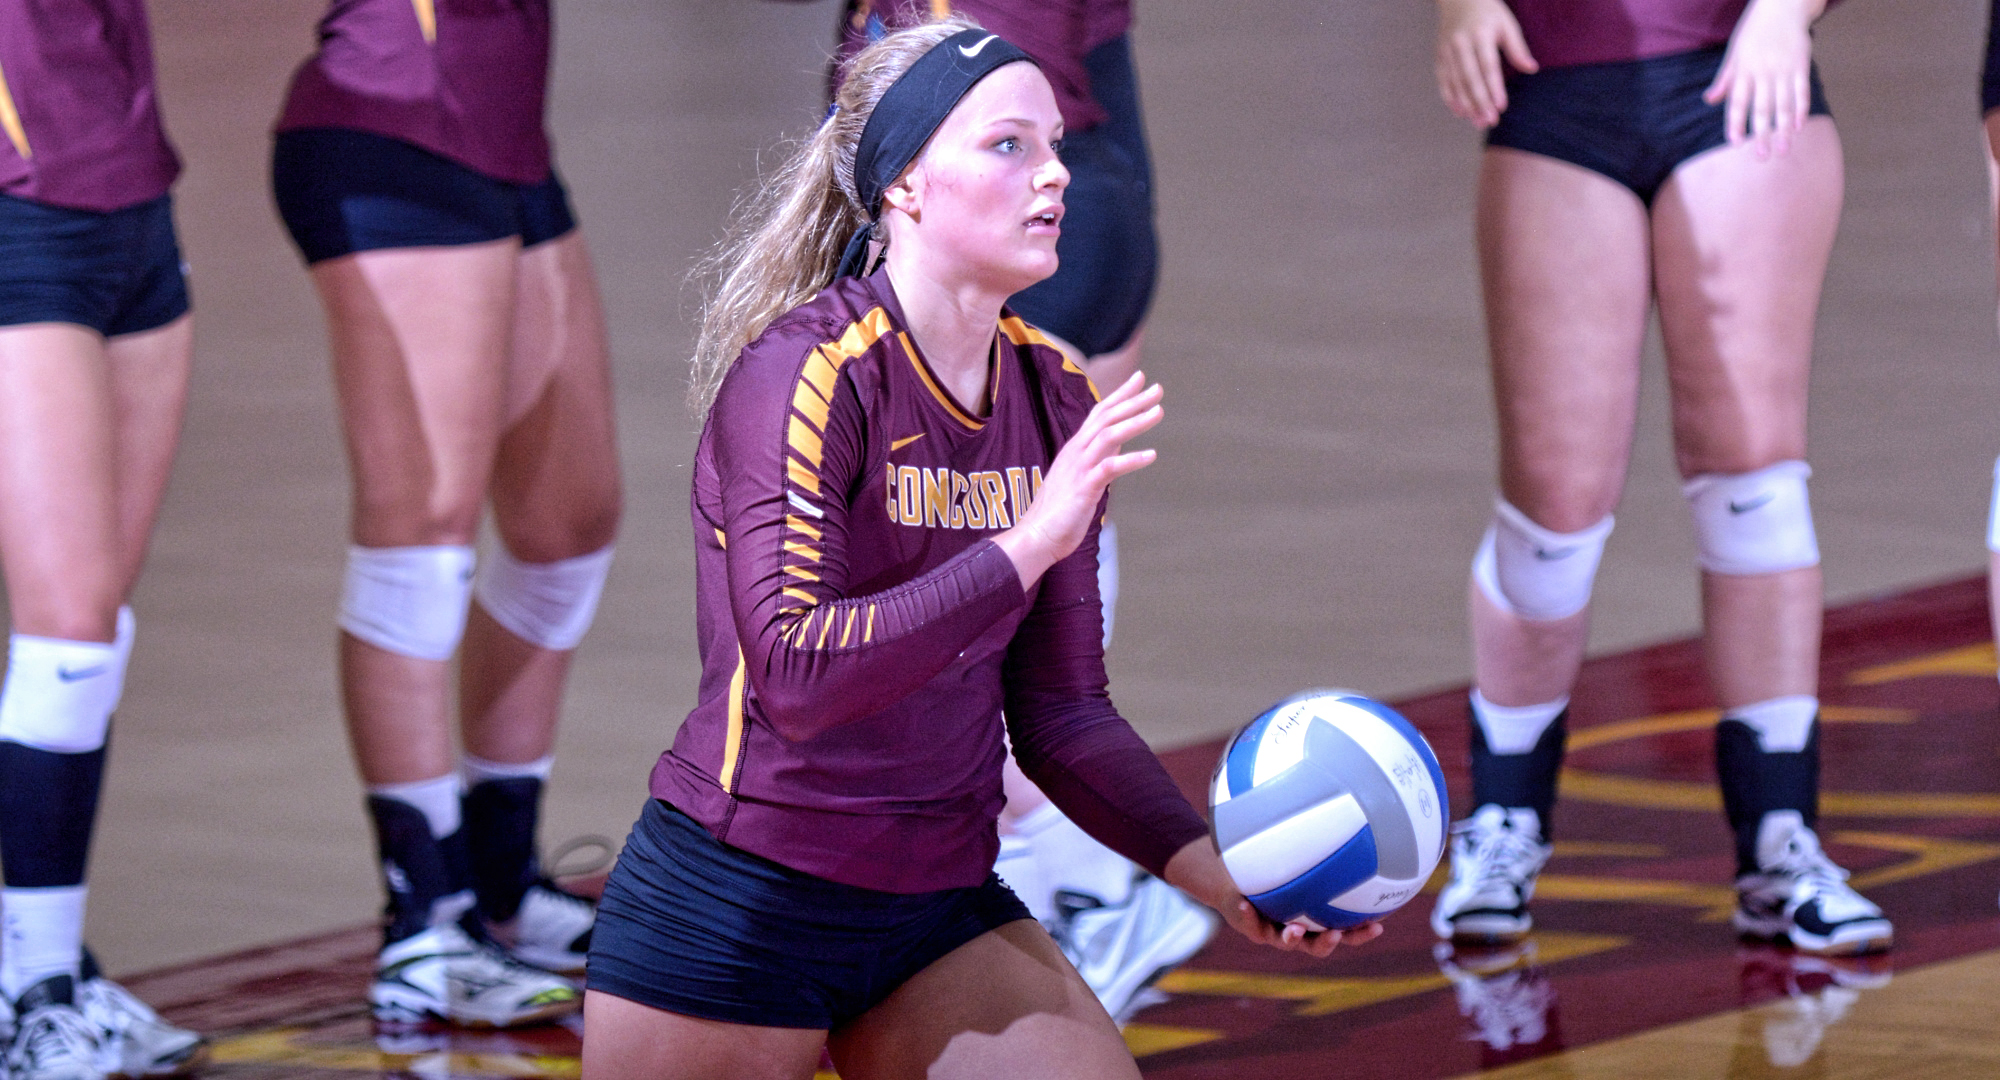 Junior Emily Friedrich had nine kills and hit .353 to lead the Cobbers at Minn.-Morris.